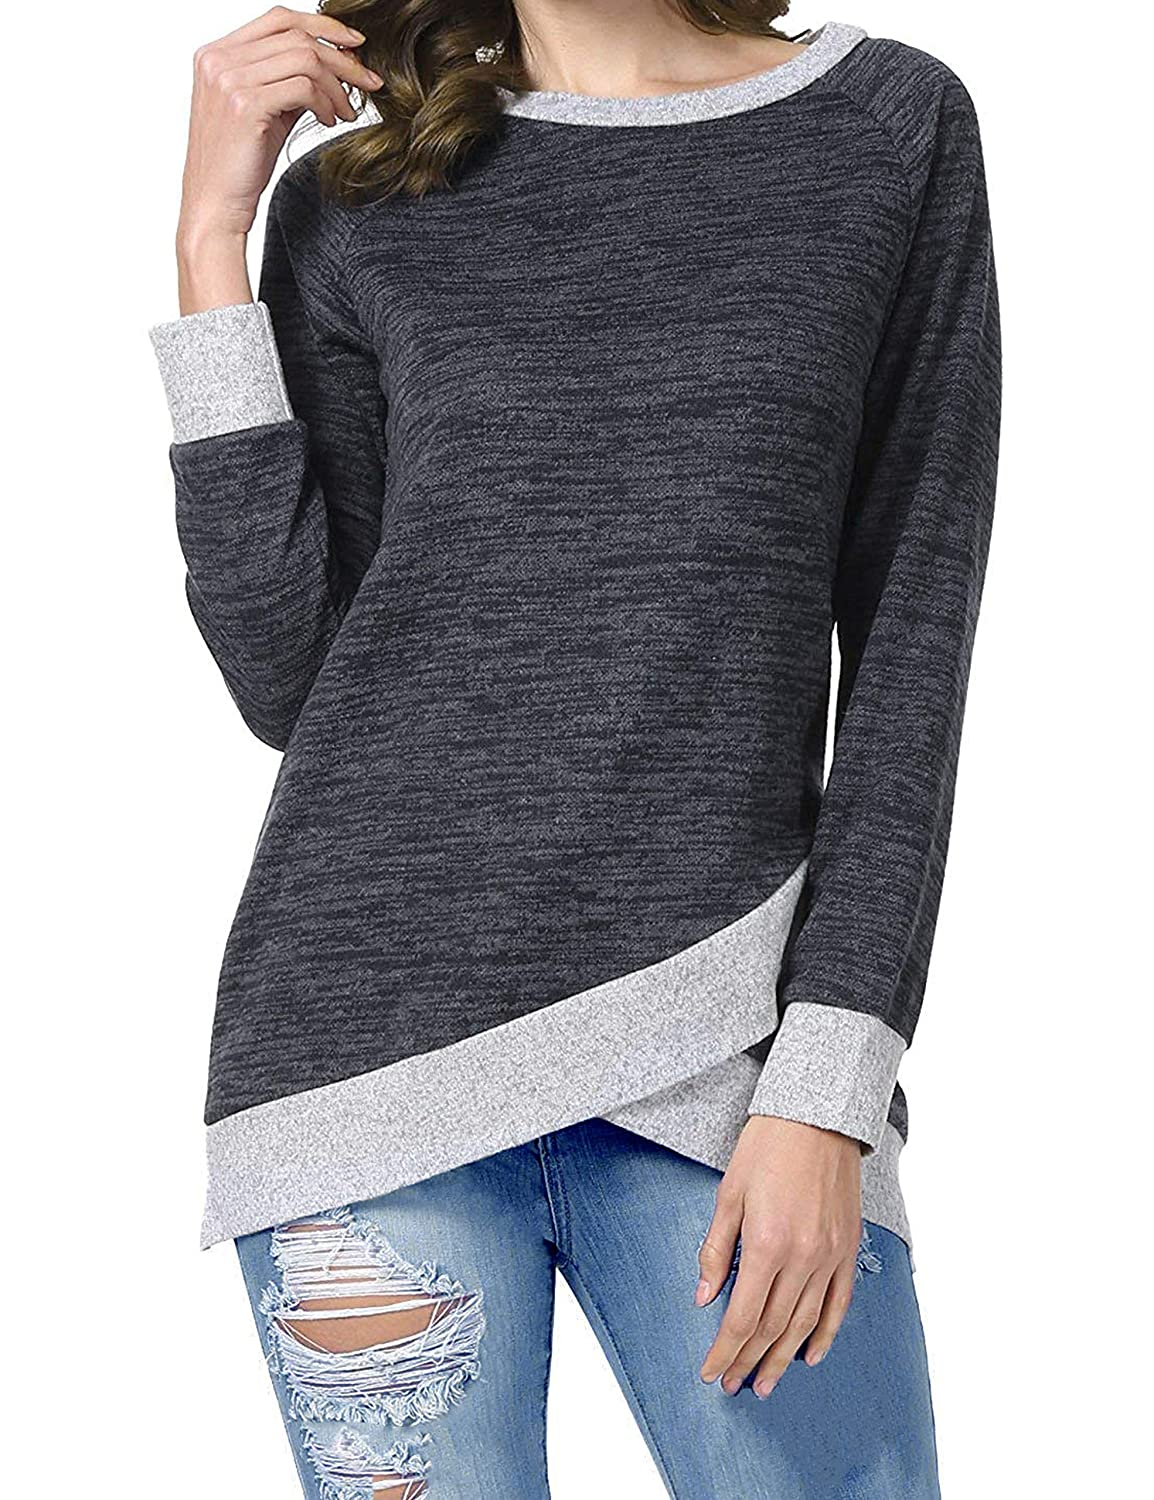 Odosalii Womens Crewneck Short Sleeve Color Block Loose T-Shirt Casual Baggy Sweatshirt Tee Blouse Tunic Top